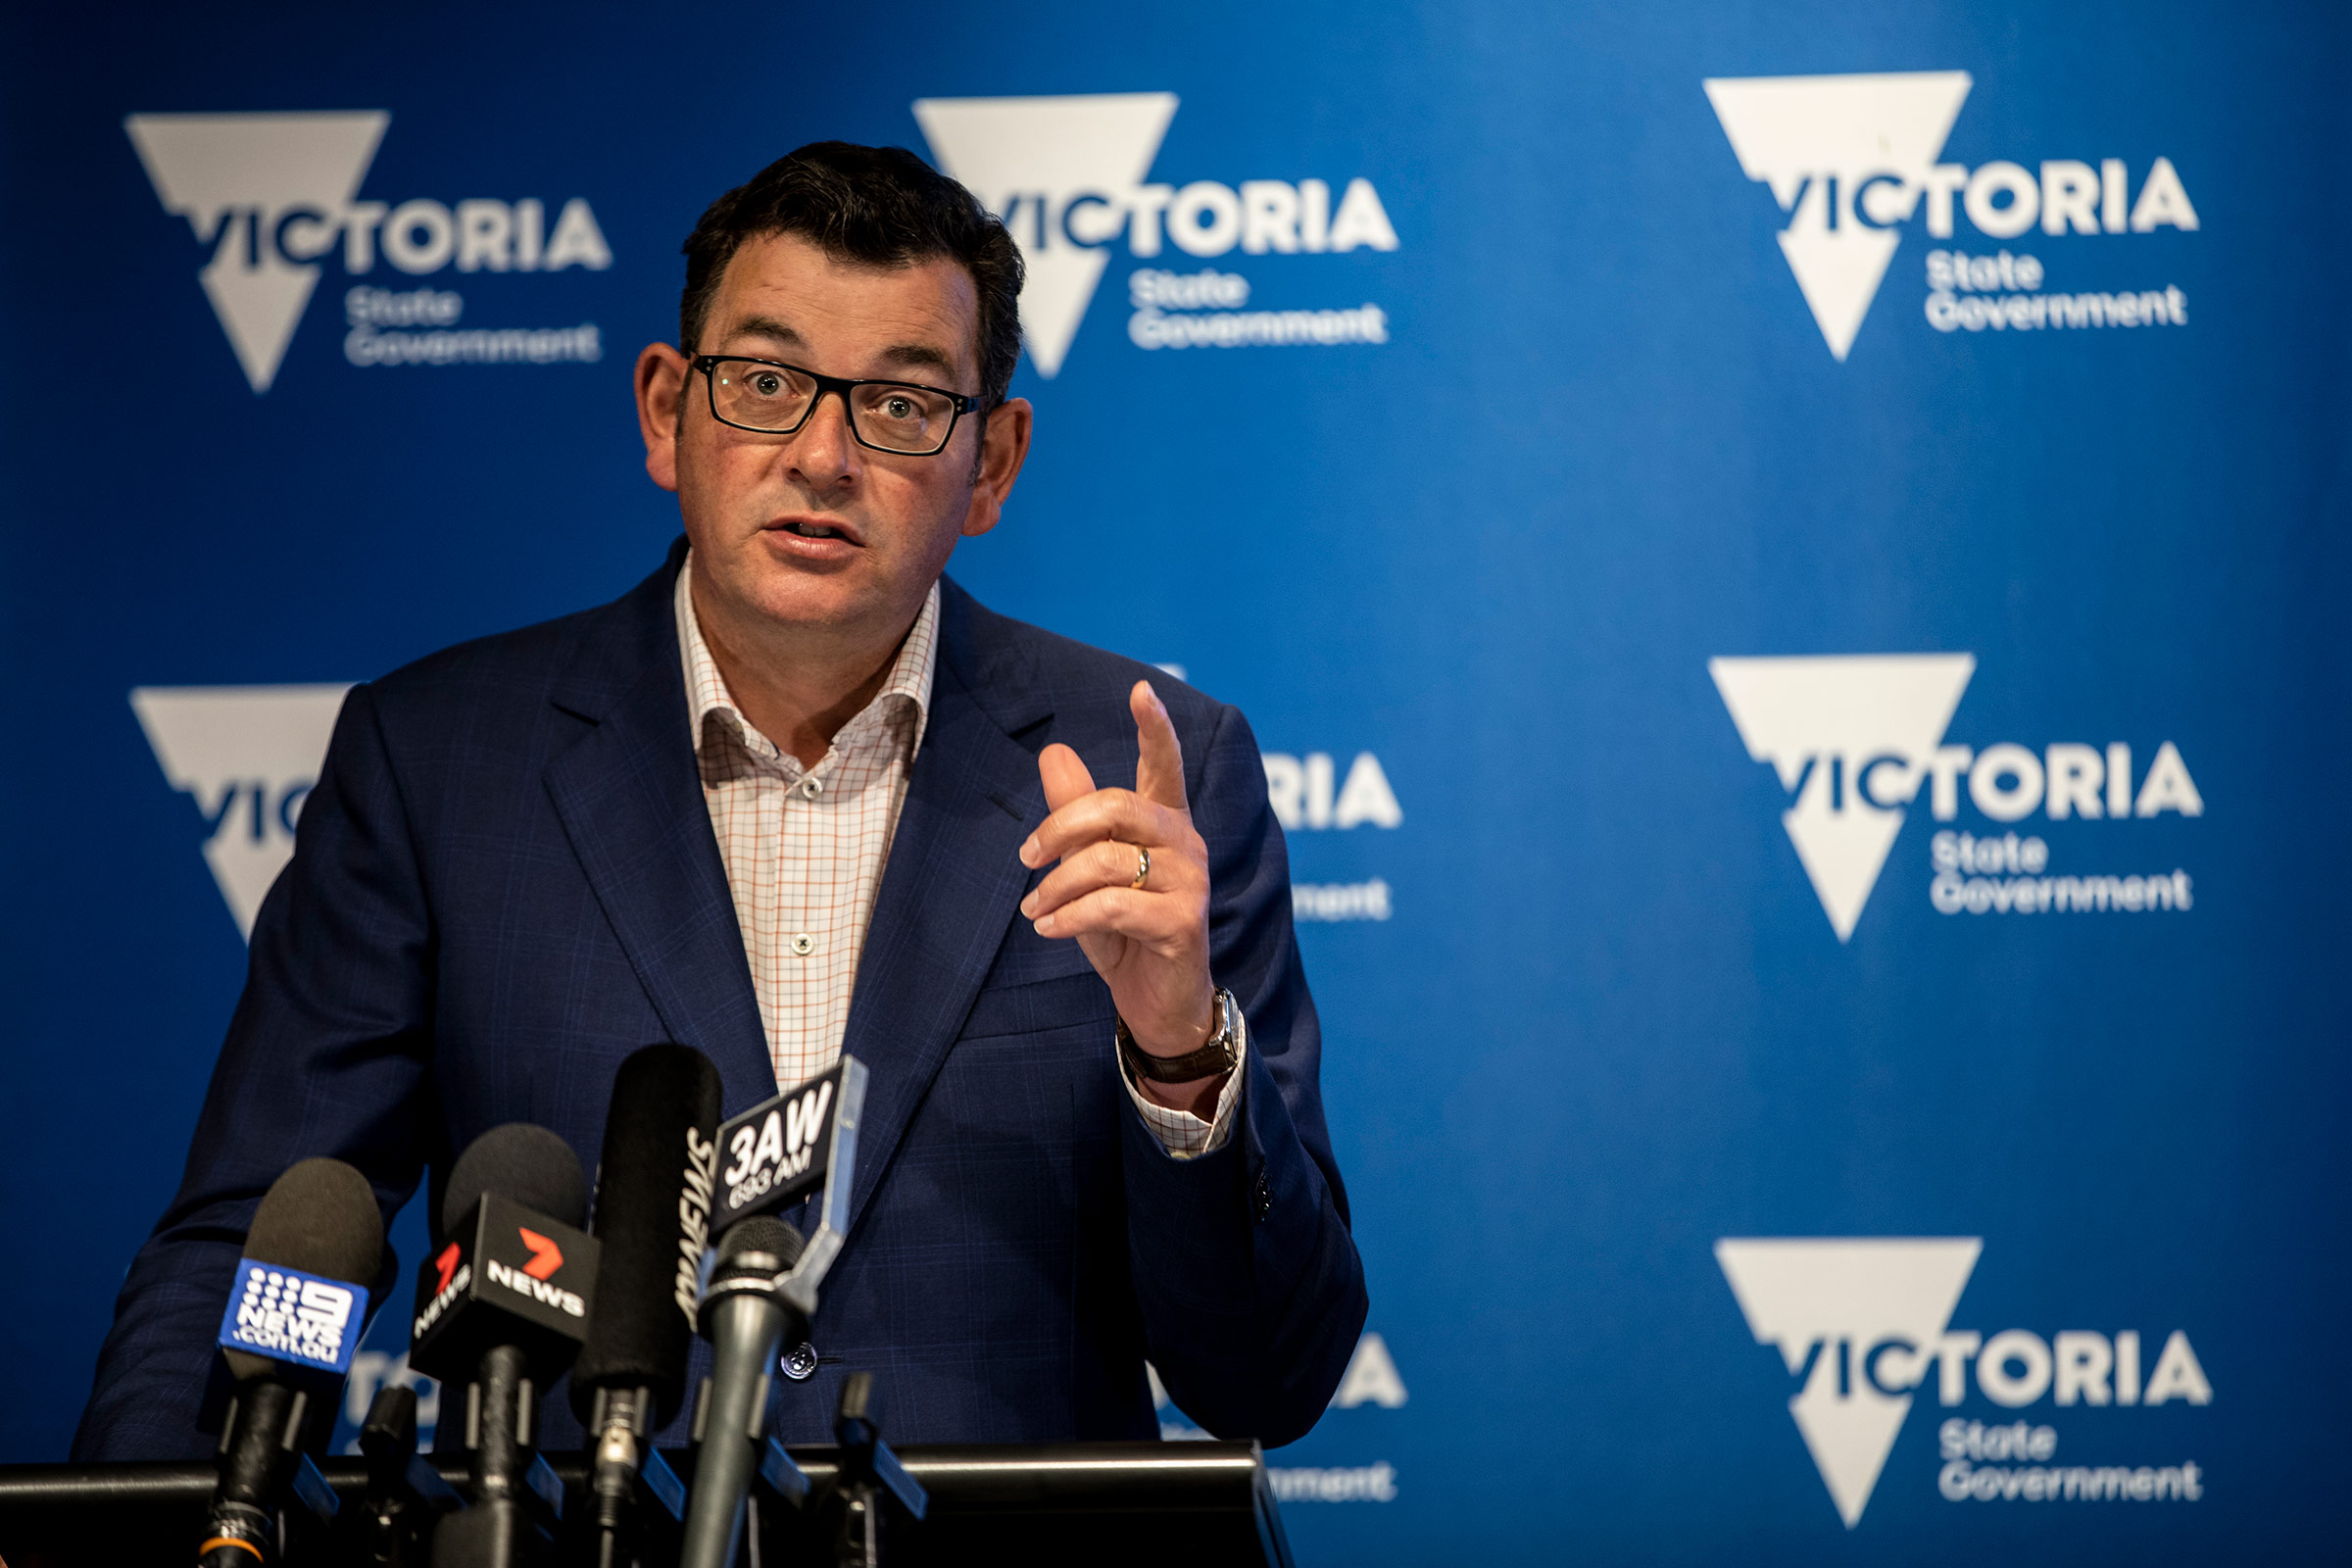 Victoria Premier Daniel Andrews speaks at a news conference on February 12, in Melbourne, Australia.